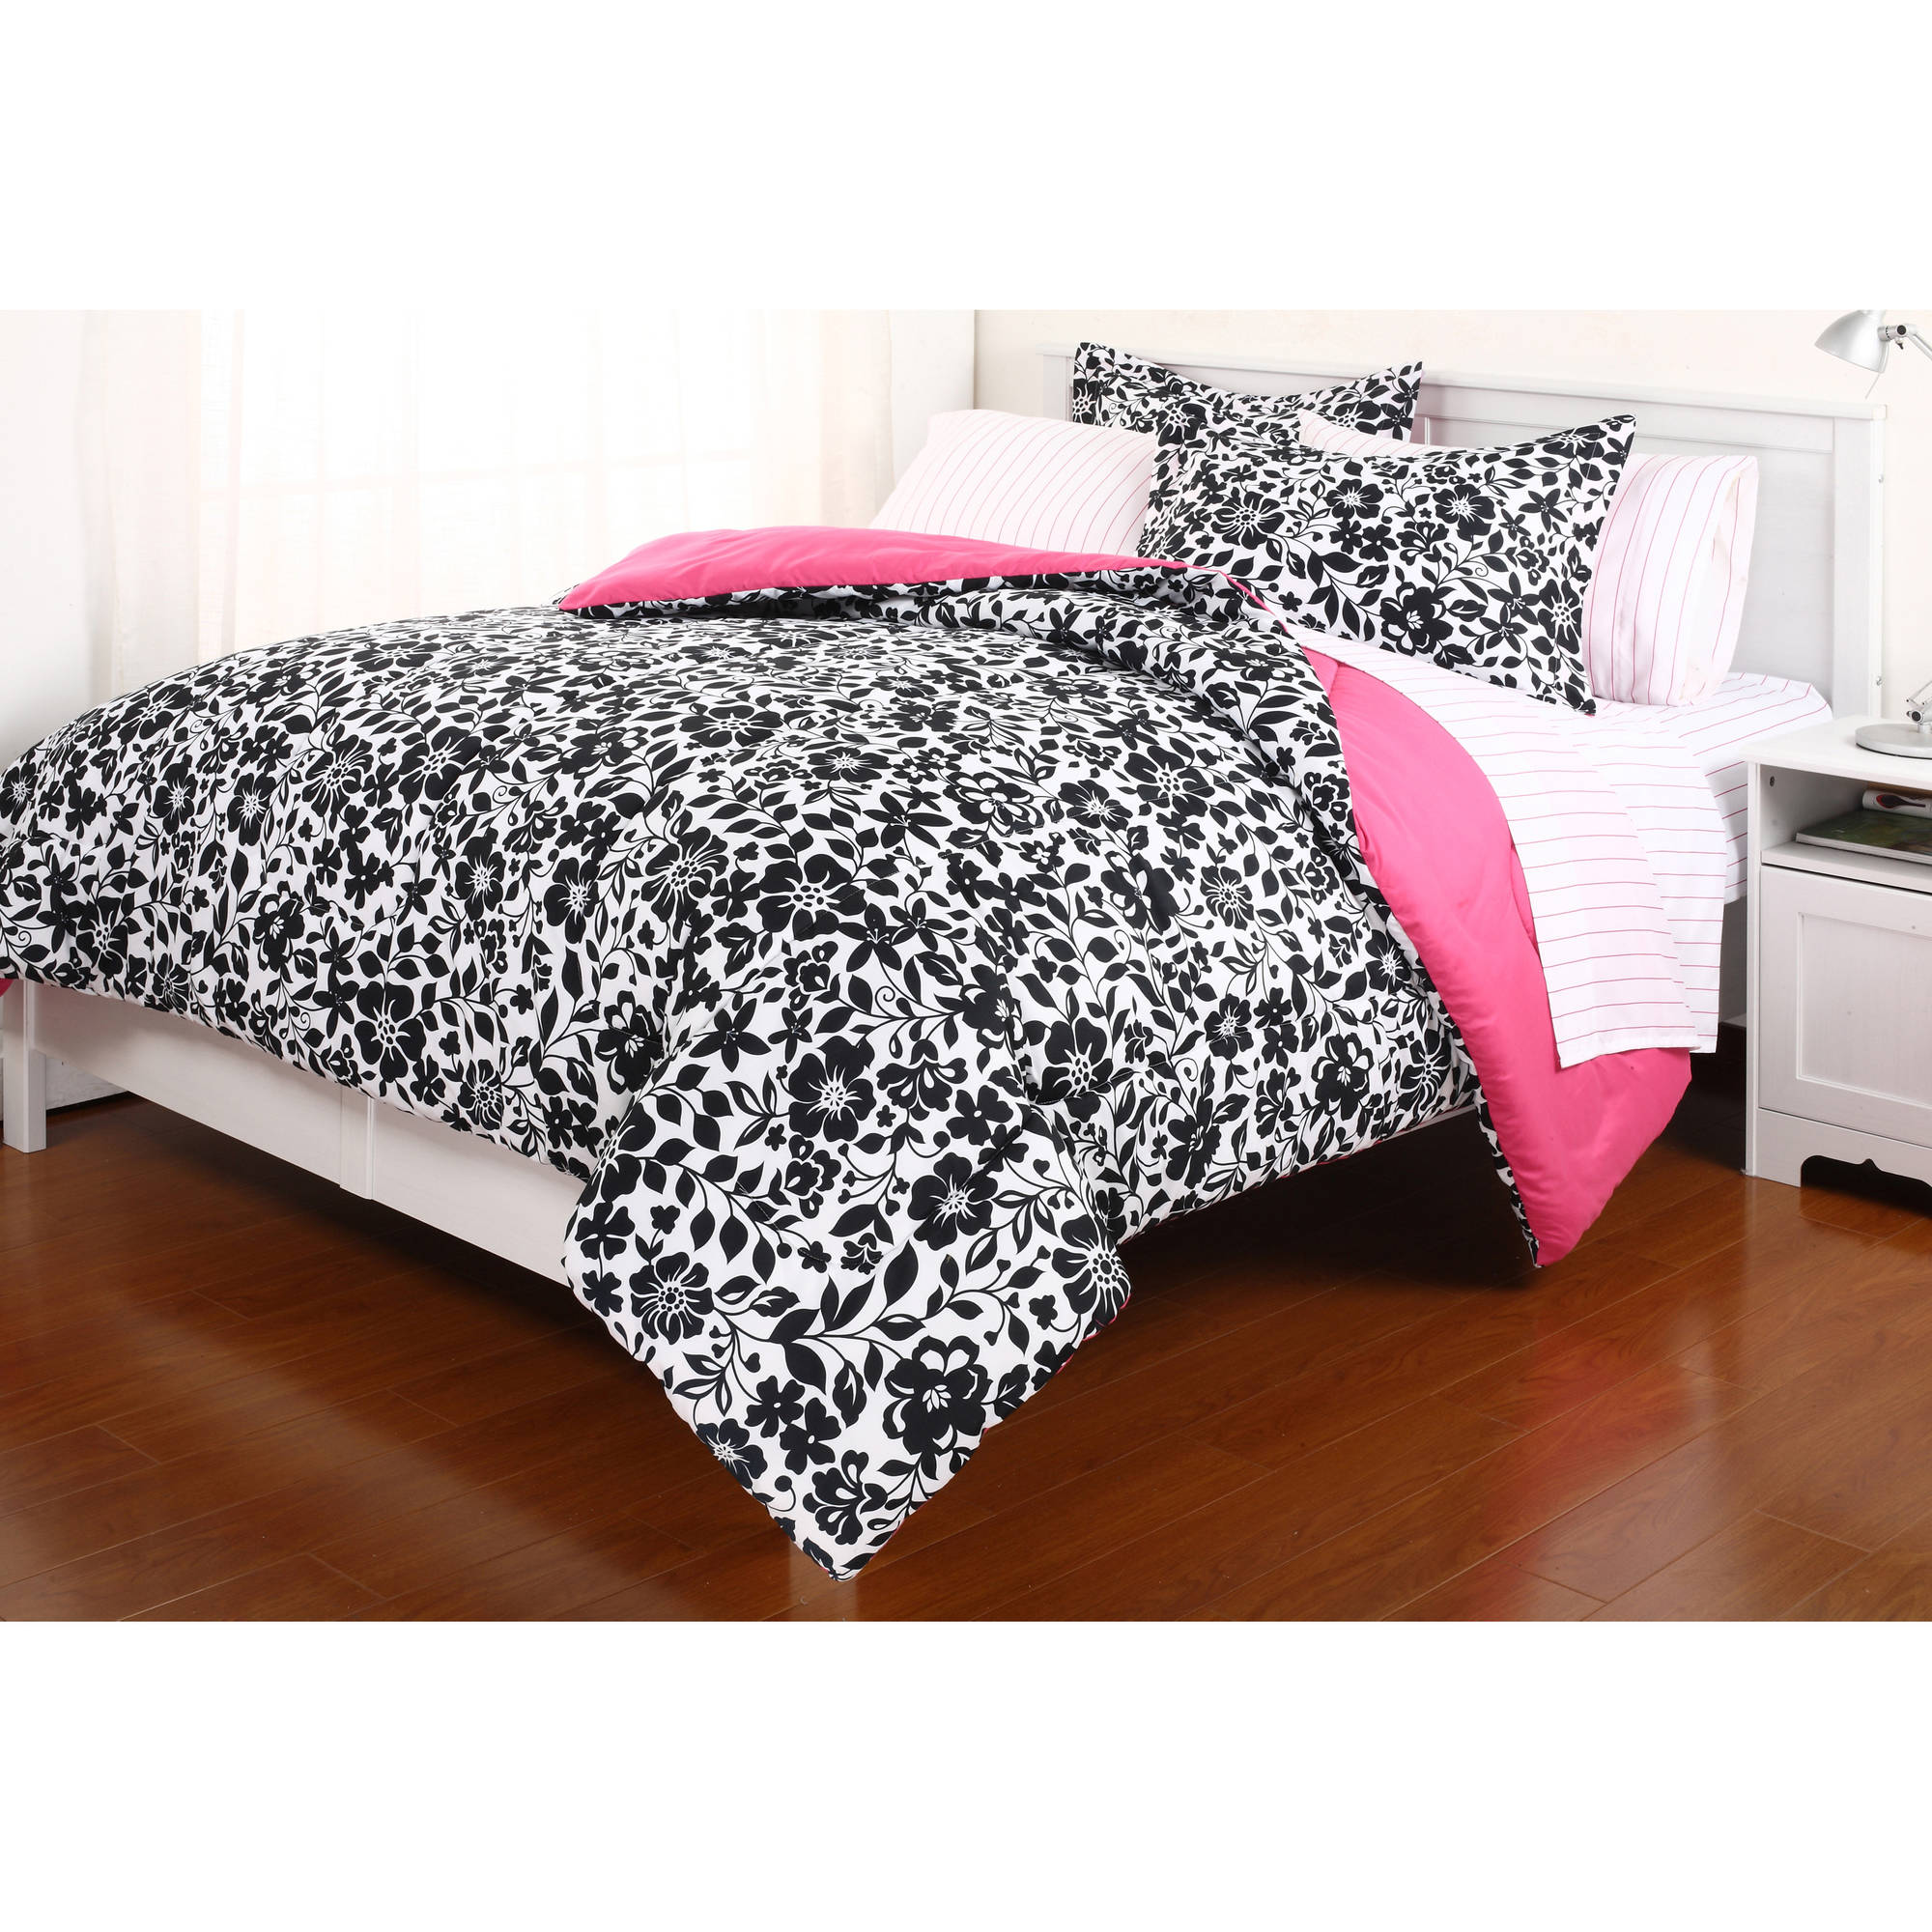 Amelia Reversible Bed in a Bag Bedding Set